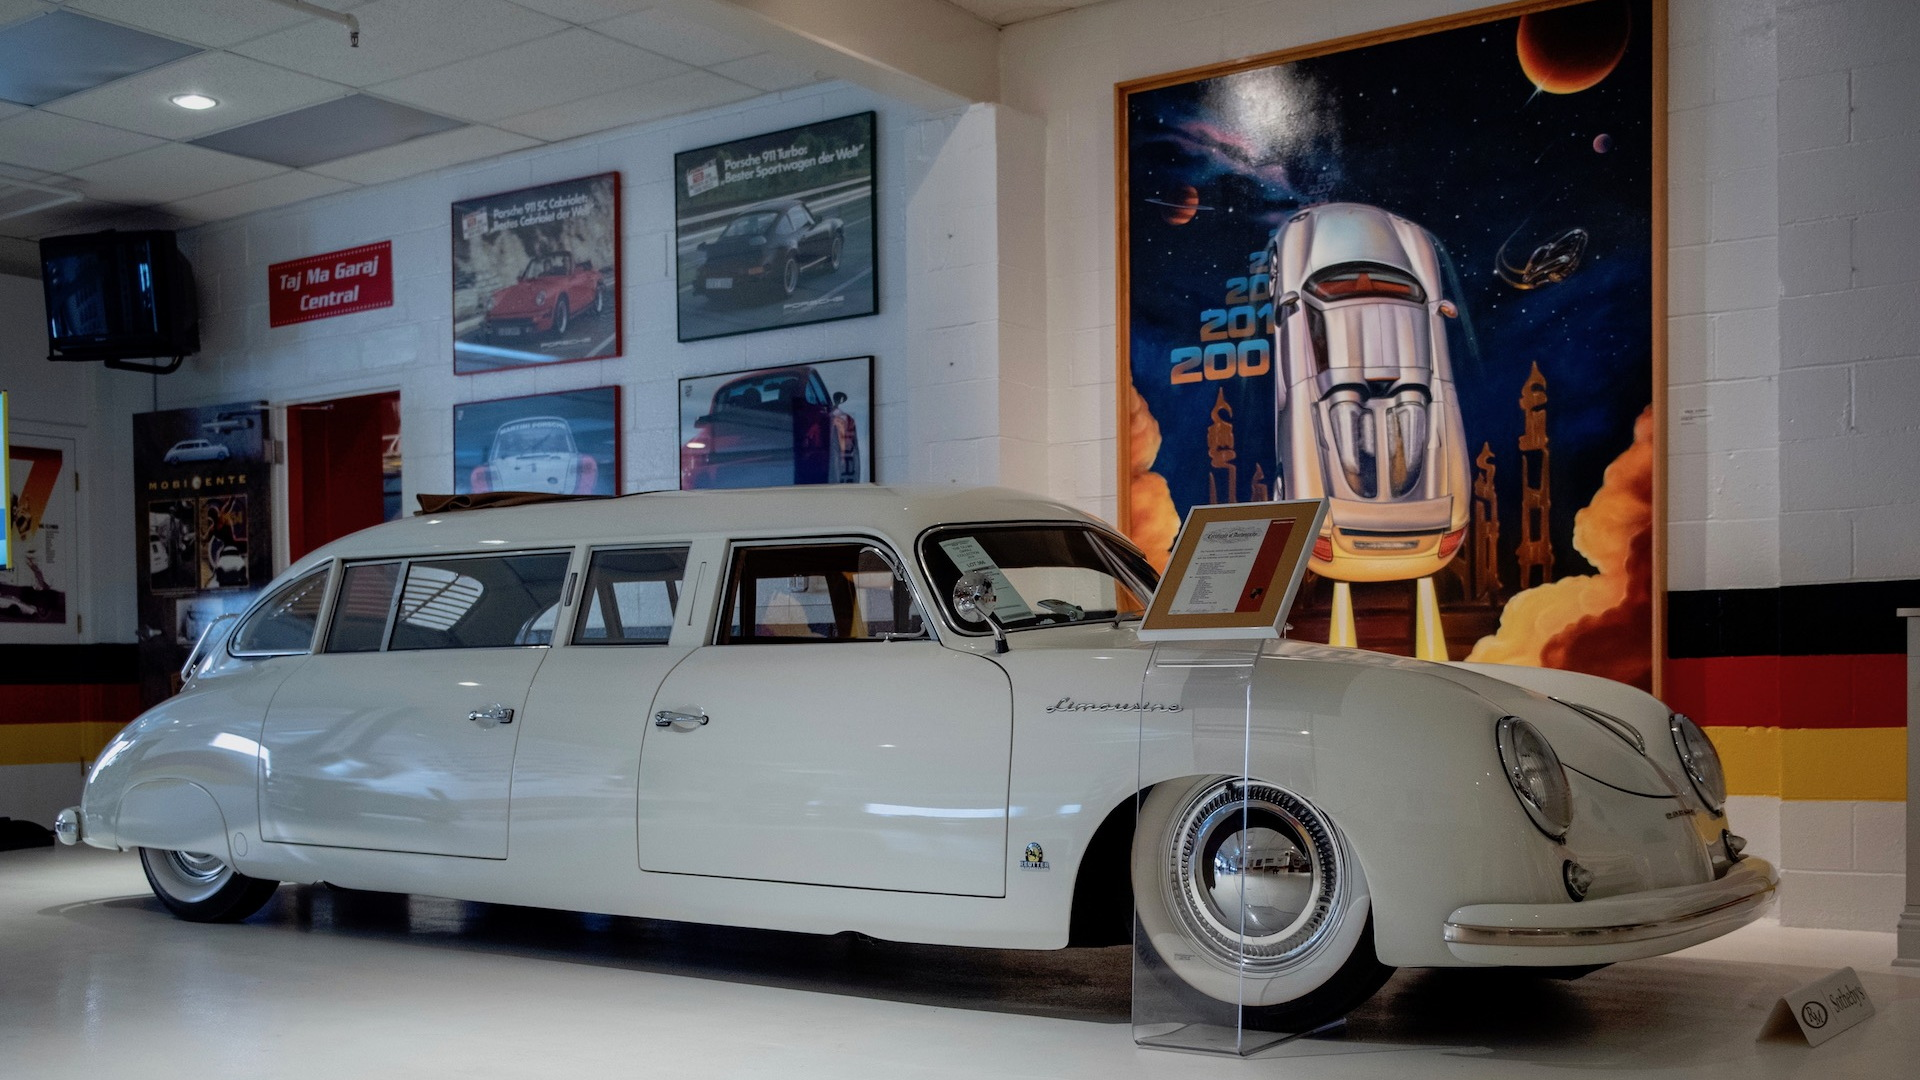 1953 Porsche 356 limousine from the Taj Ma Garaj auction